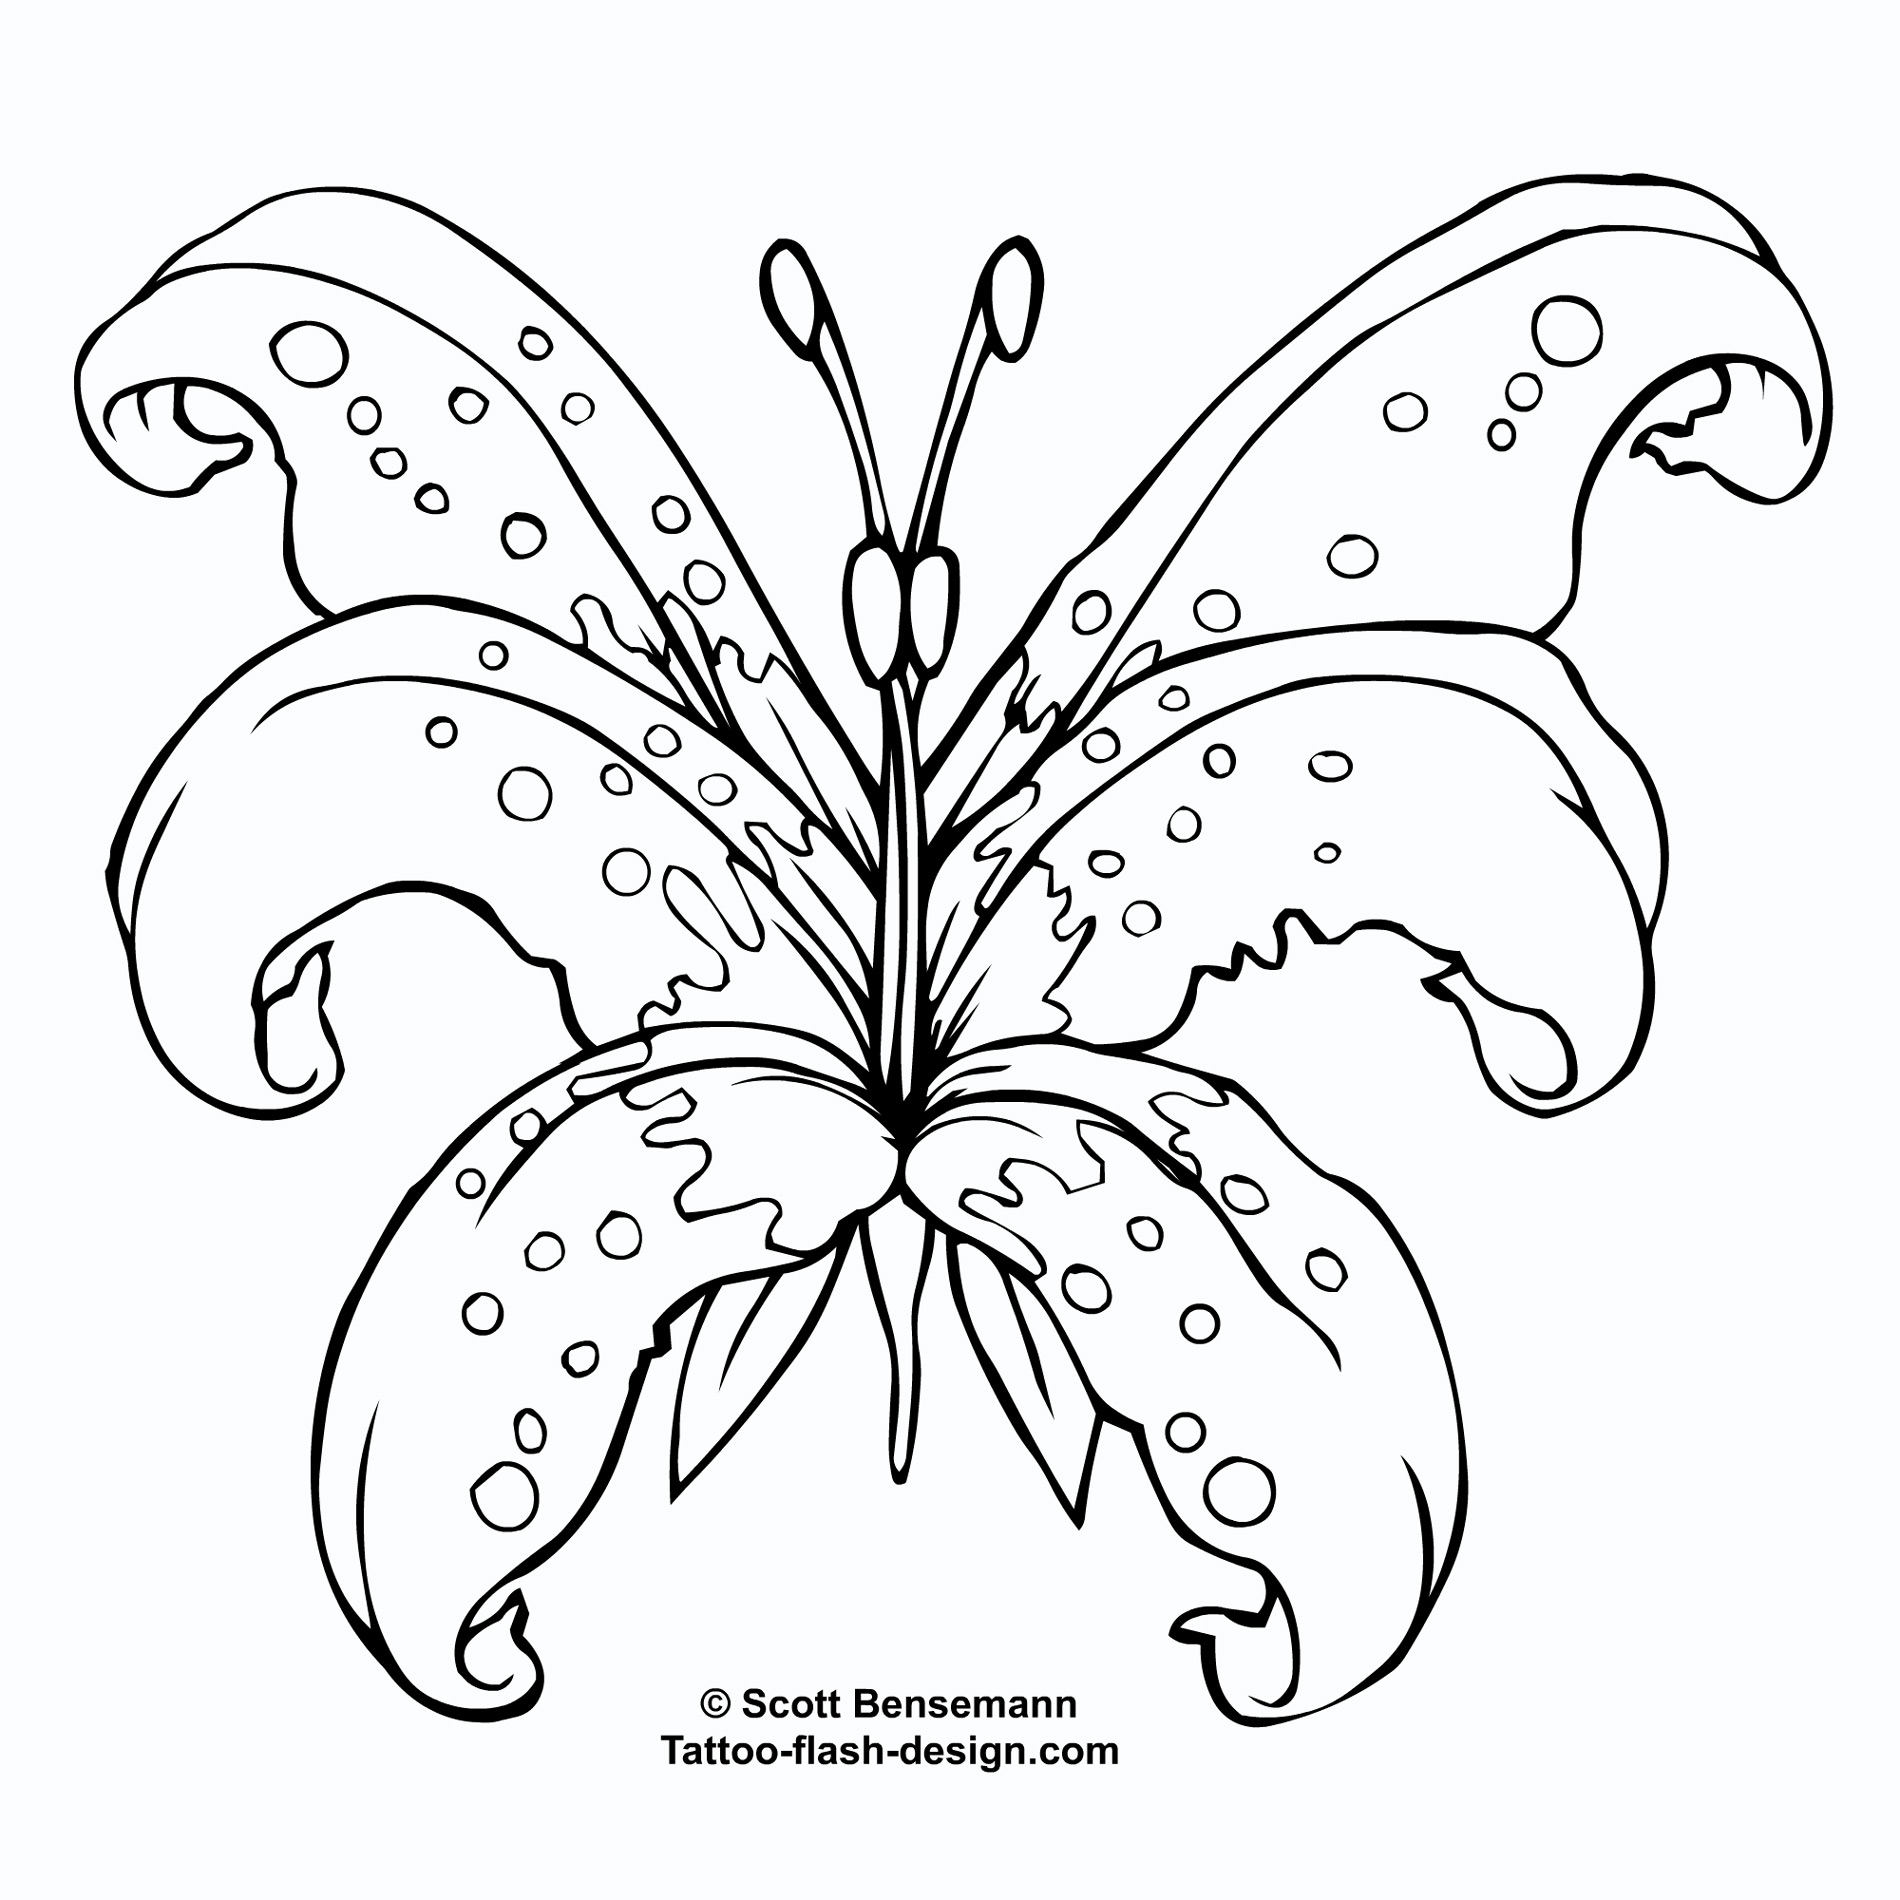 Grey and white lily flower tattoo design awesome lily flower tattoo design izmirmasajfo Choice Image